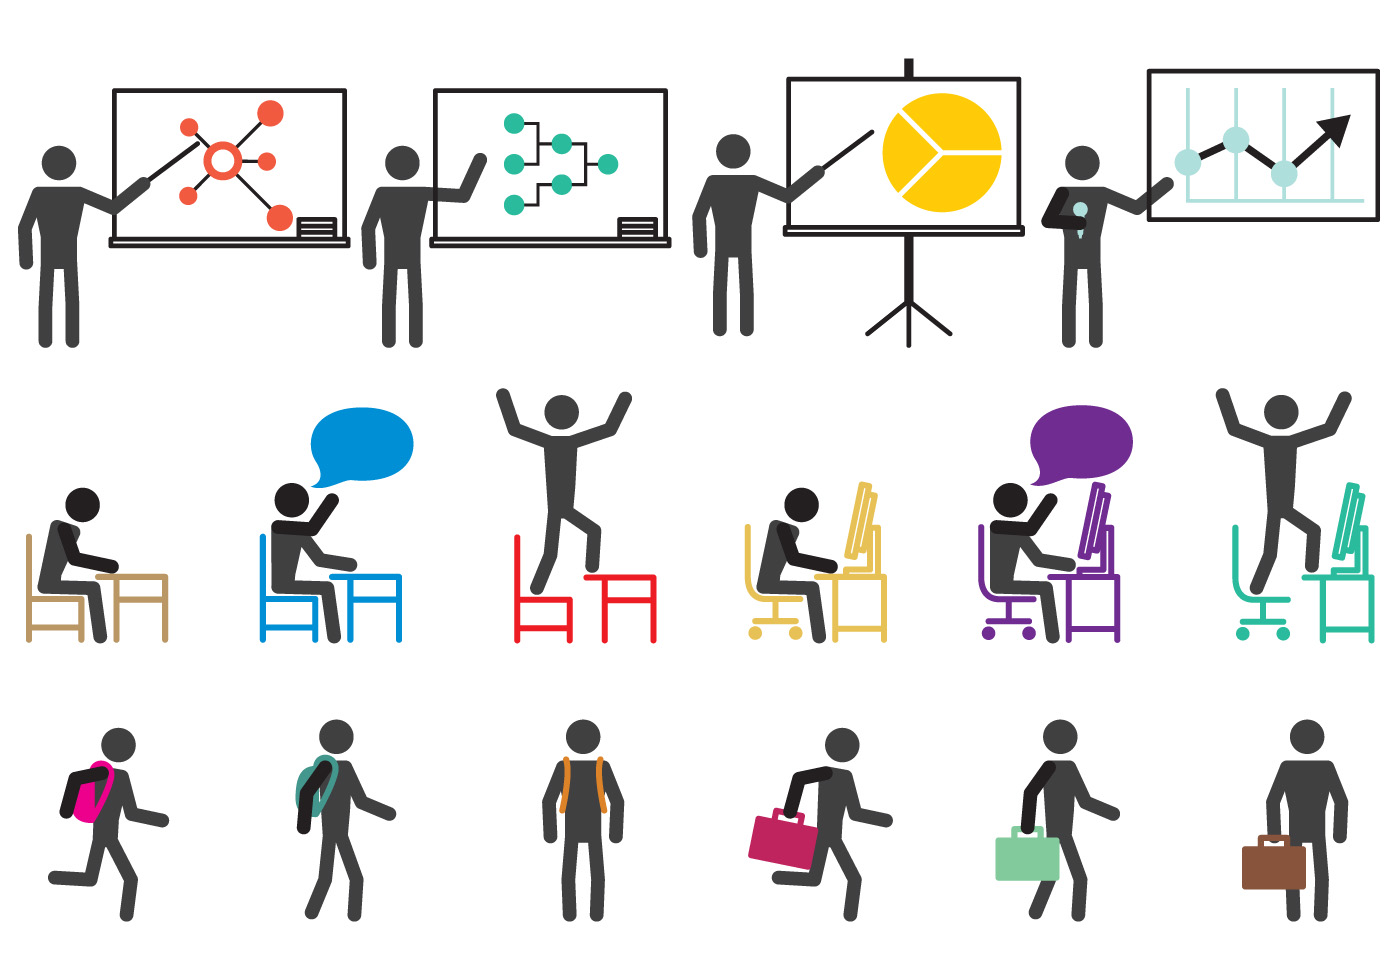 School And Work Icons Download Free Vectors Clipart Graphics Vector Art Search icons & icon packs search icons search icon packs. https www vecteezy com vector art 93491 school and work icons